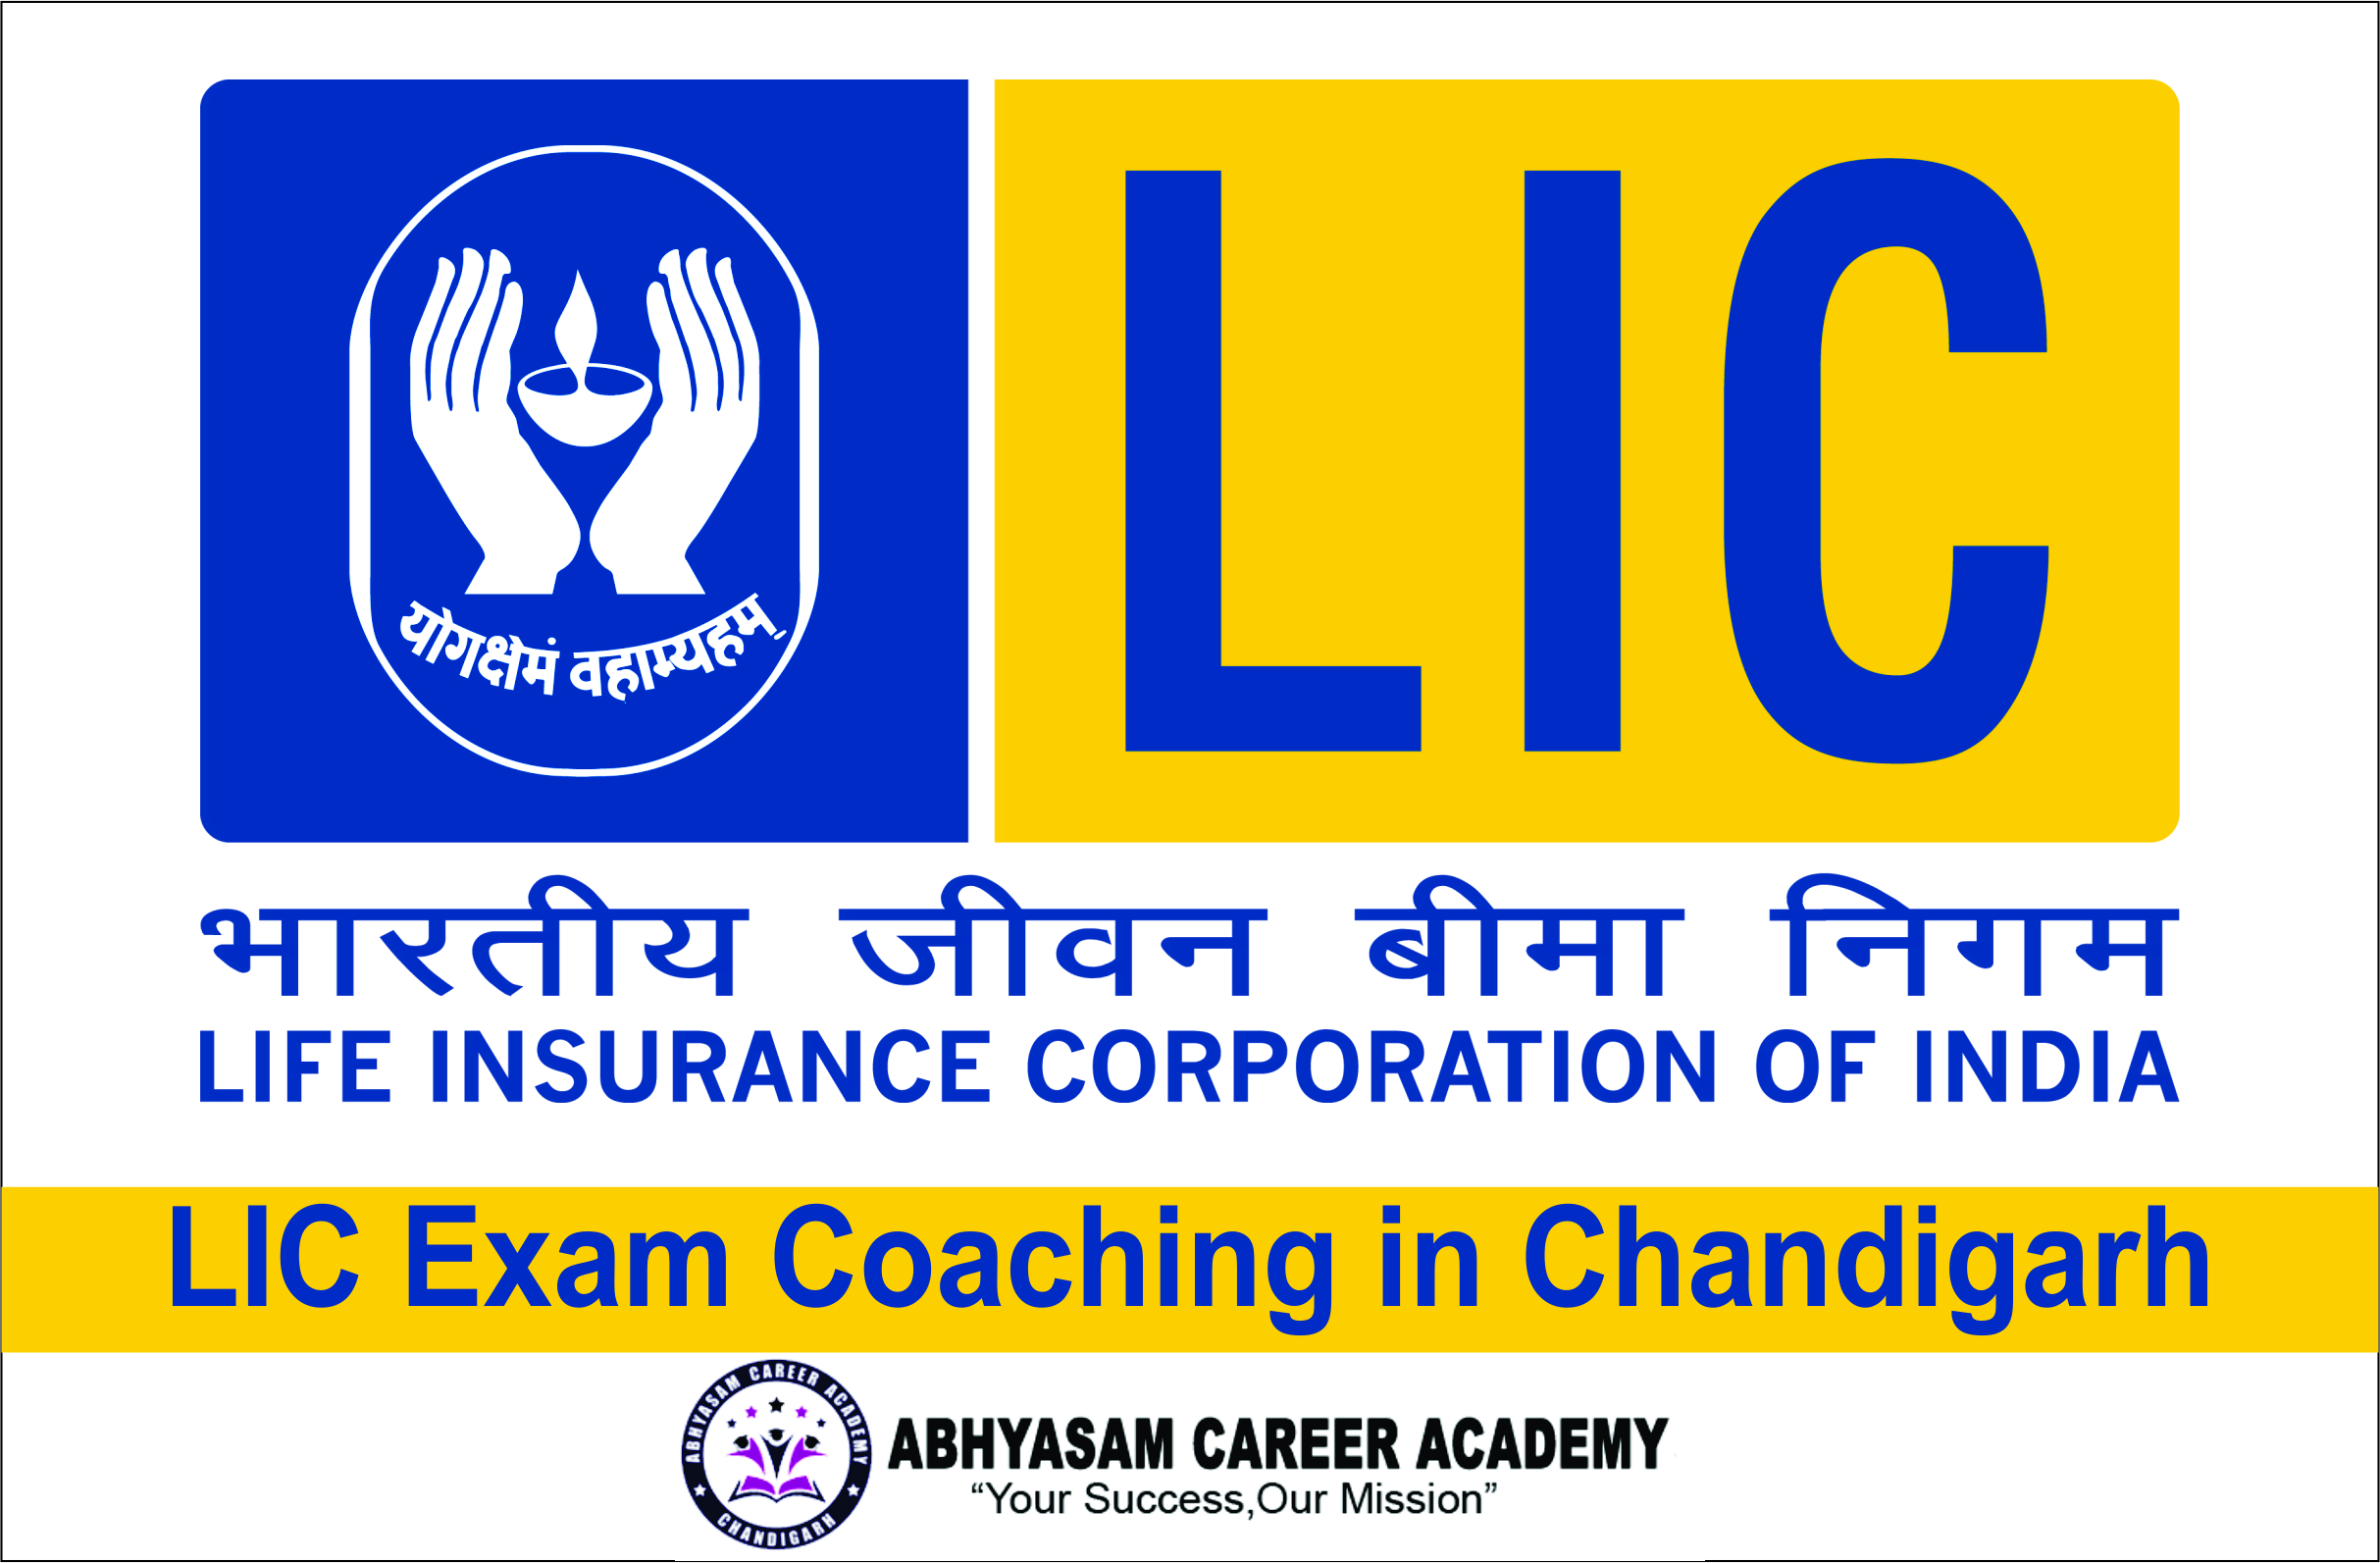 LIC EXAM COACHING IN Chandigarh